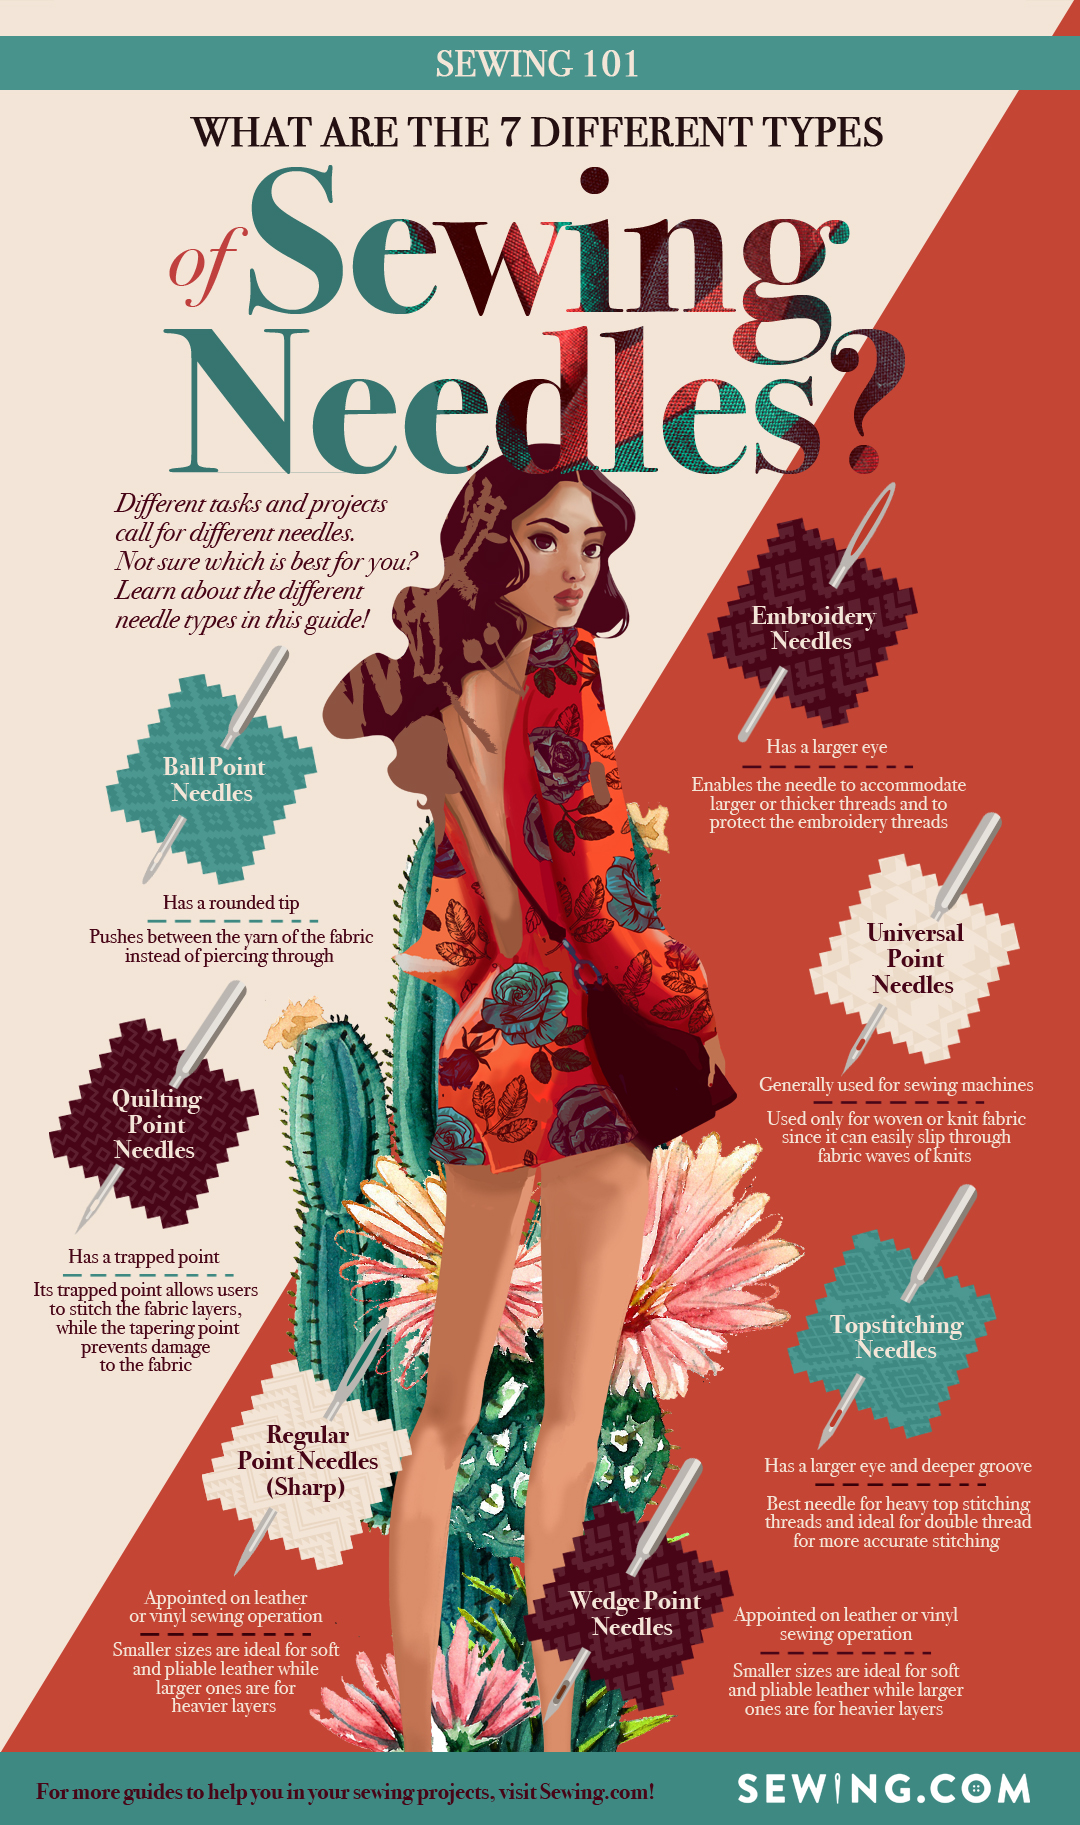 Sewing 101: What Are The 7 Different Types Of Sewing Needles?